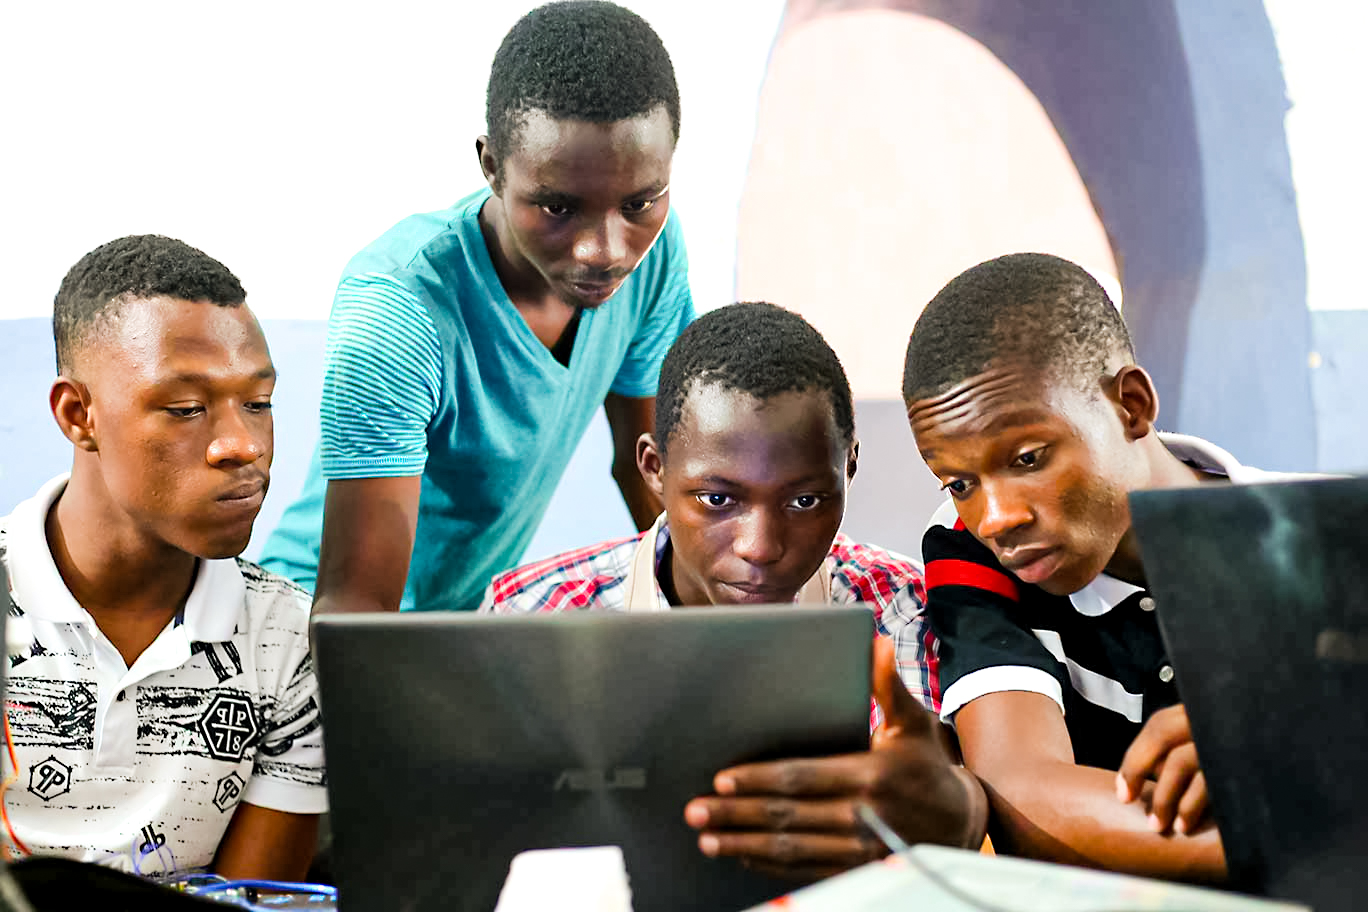 Kabakoo _ Group of young men focusing on a PC_Africa